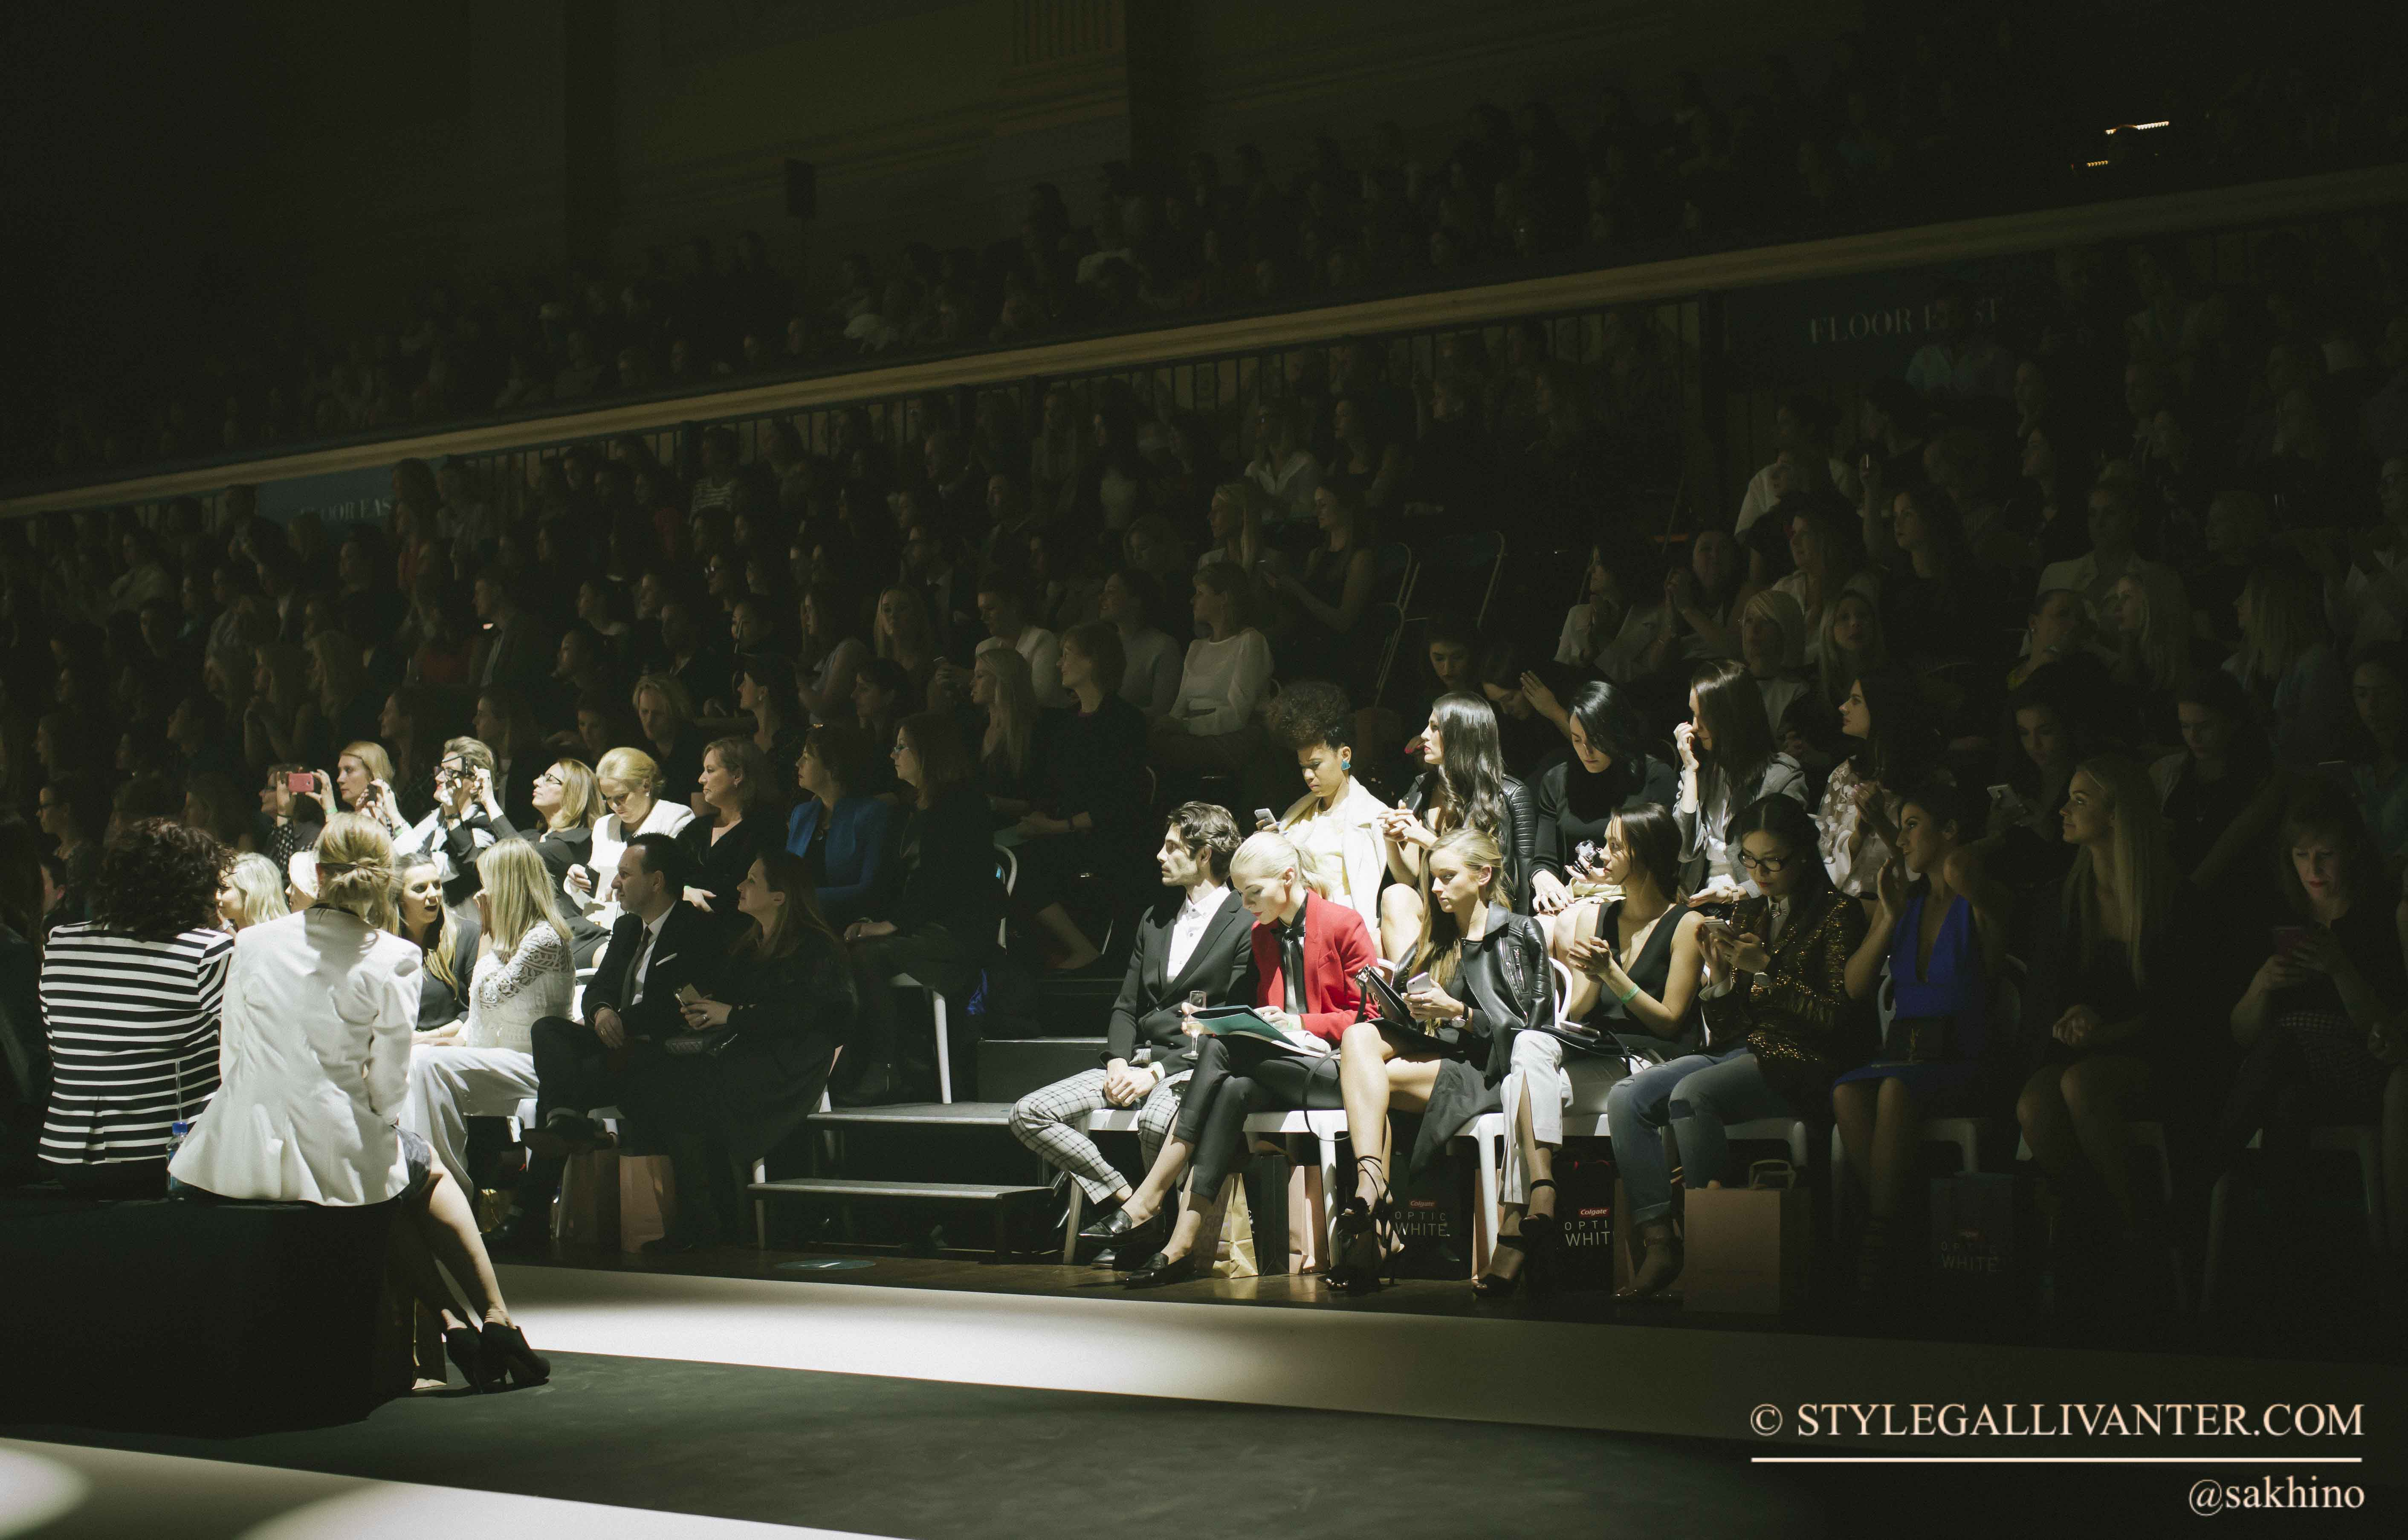 copyright-stylegallivanter.com_mr-runway-show-msfw-2015-2